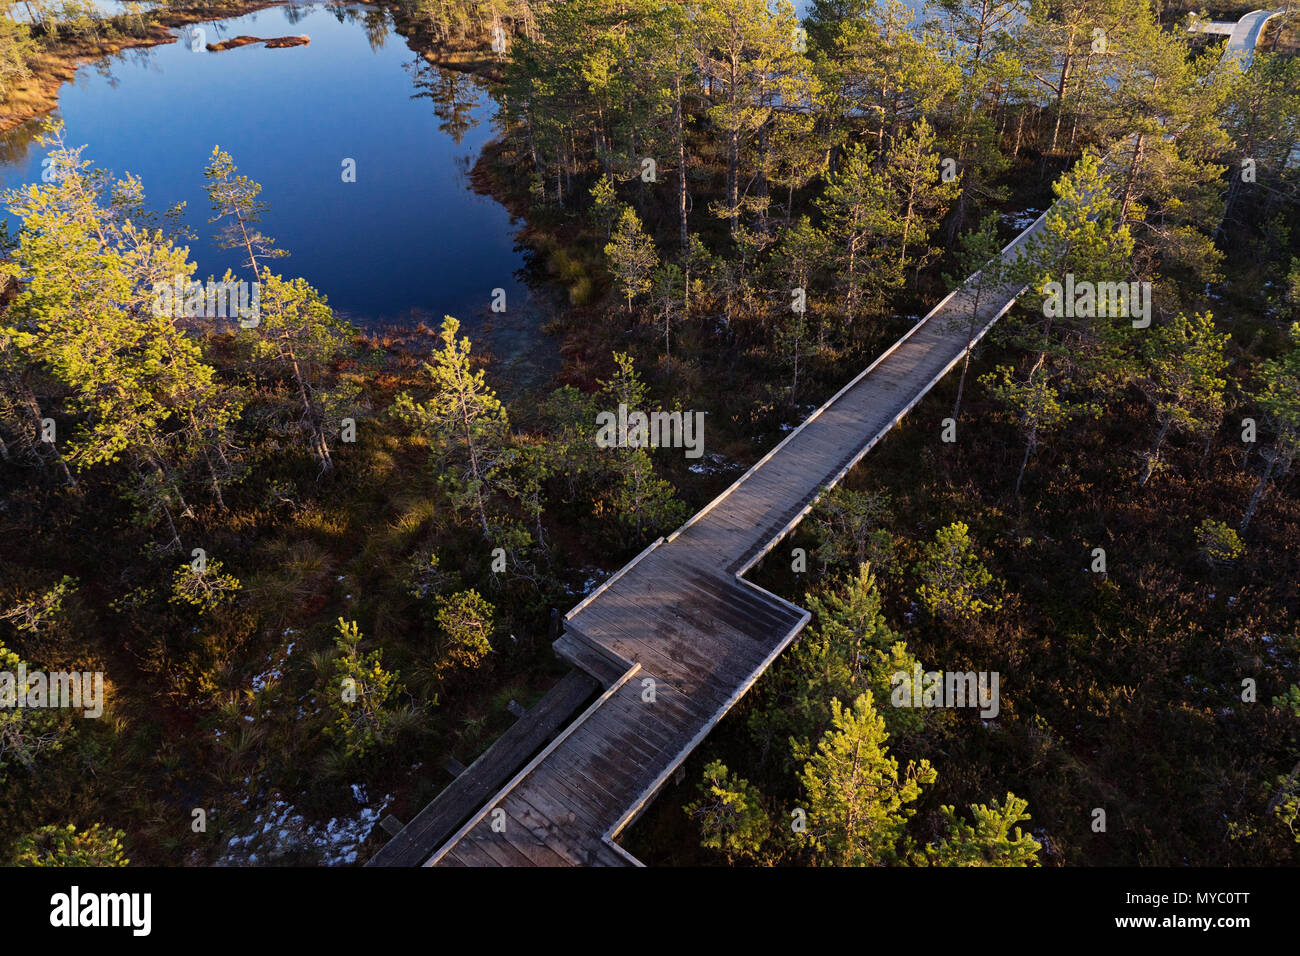 Scenic view from drone of wooden boardwalk decking between lake and swamp in nature reserve park. Bog marsh landscape drone point of view - Stock Image